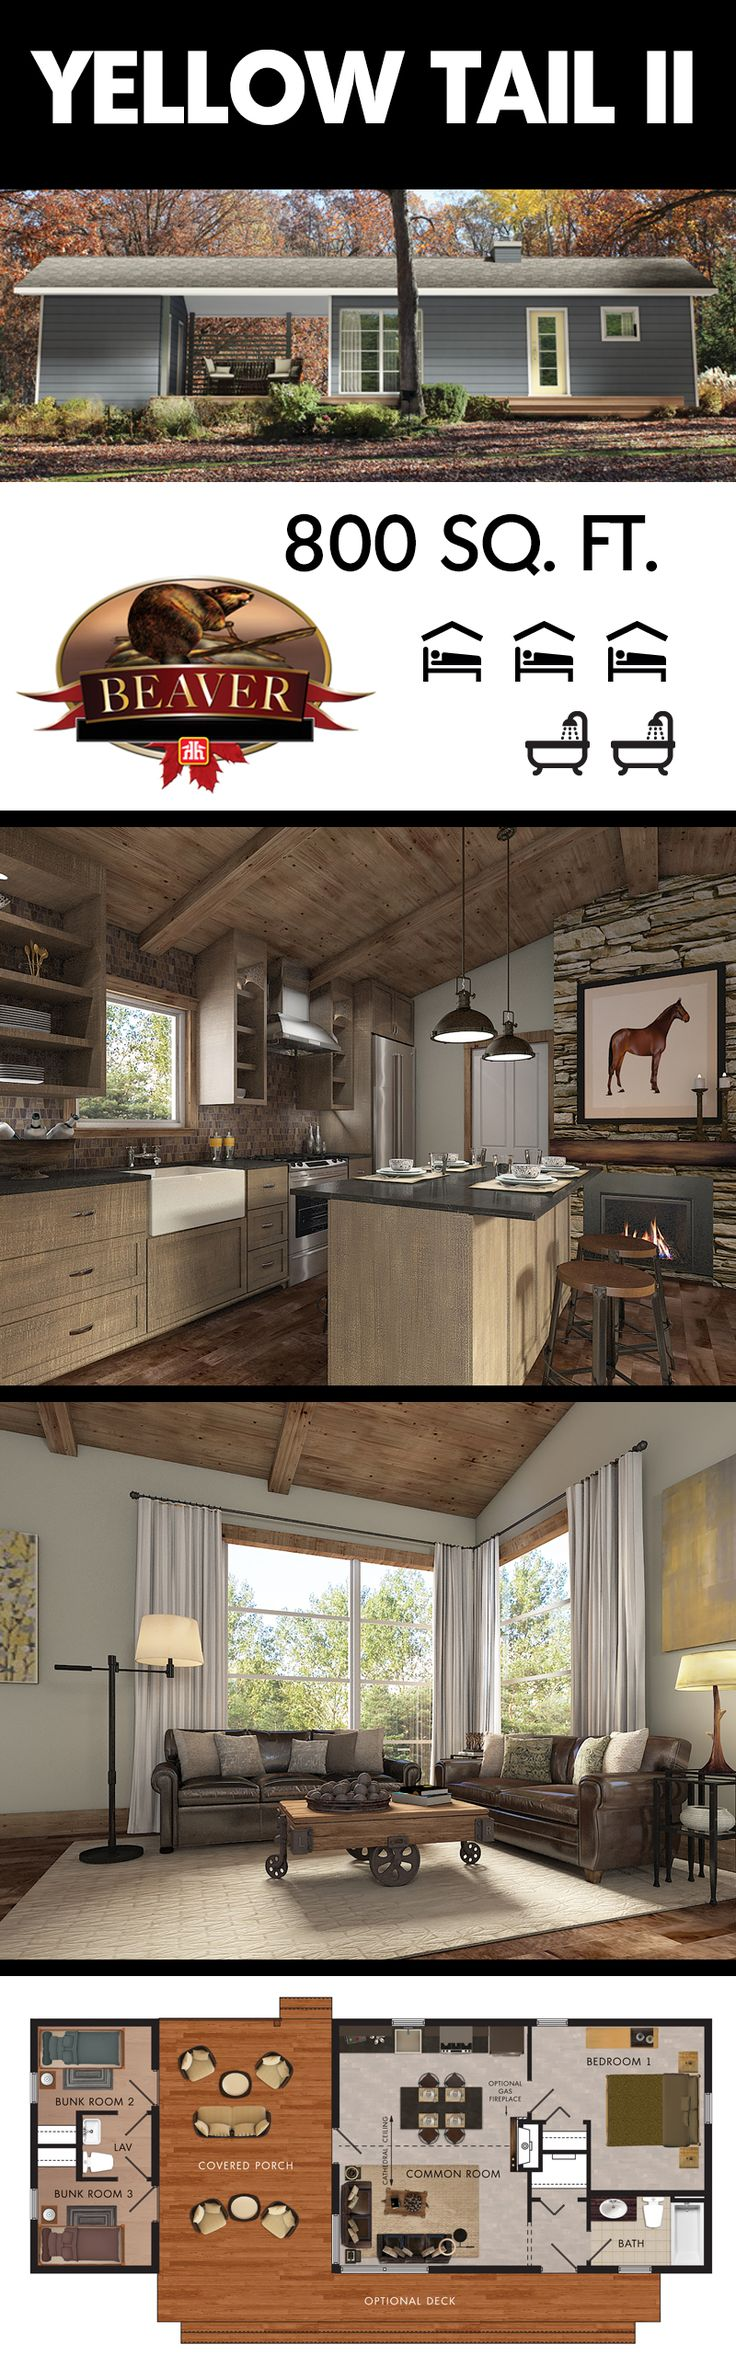 The Yellow Tail II model is a compact, starter #cottage that features an open concept design that can be easily expanded. #BeaverHomesAndCottages